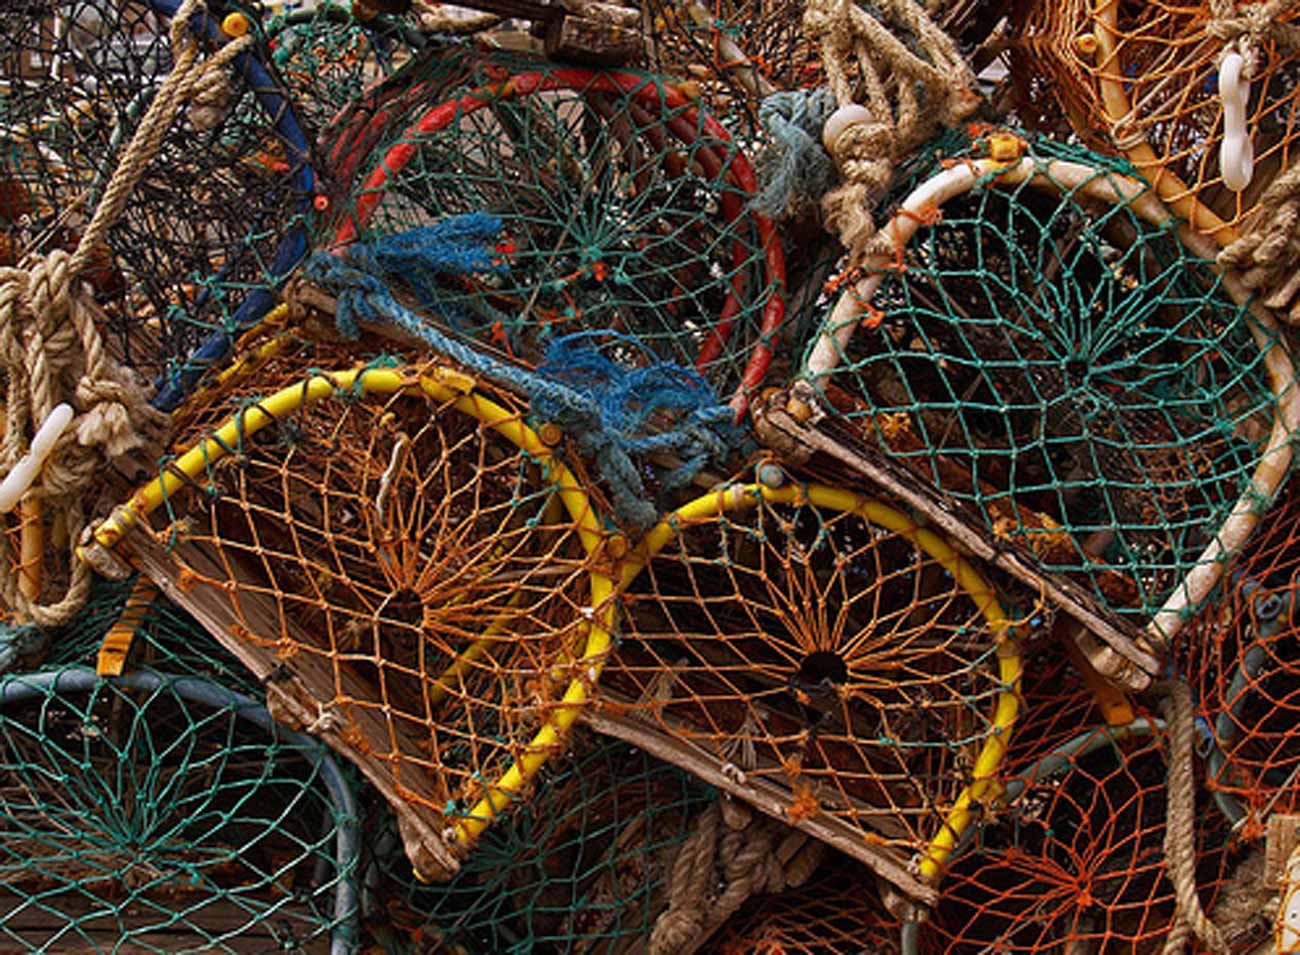 Selsey Marine Centre Concept Image - lobster pots